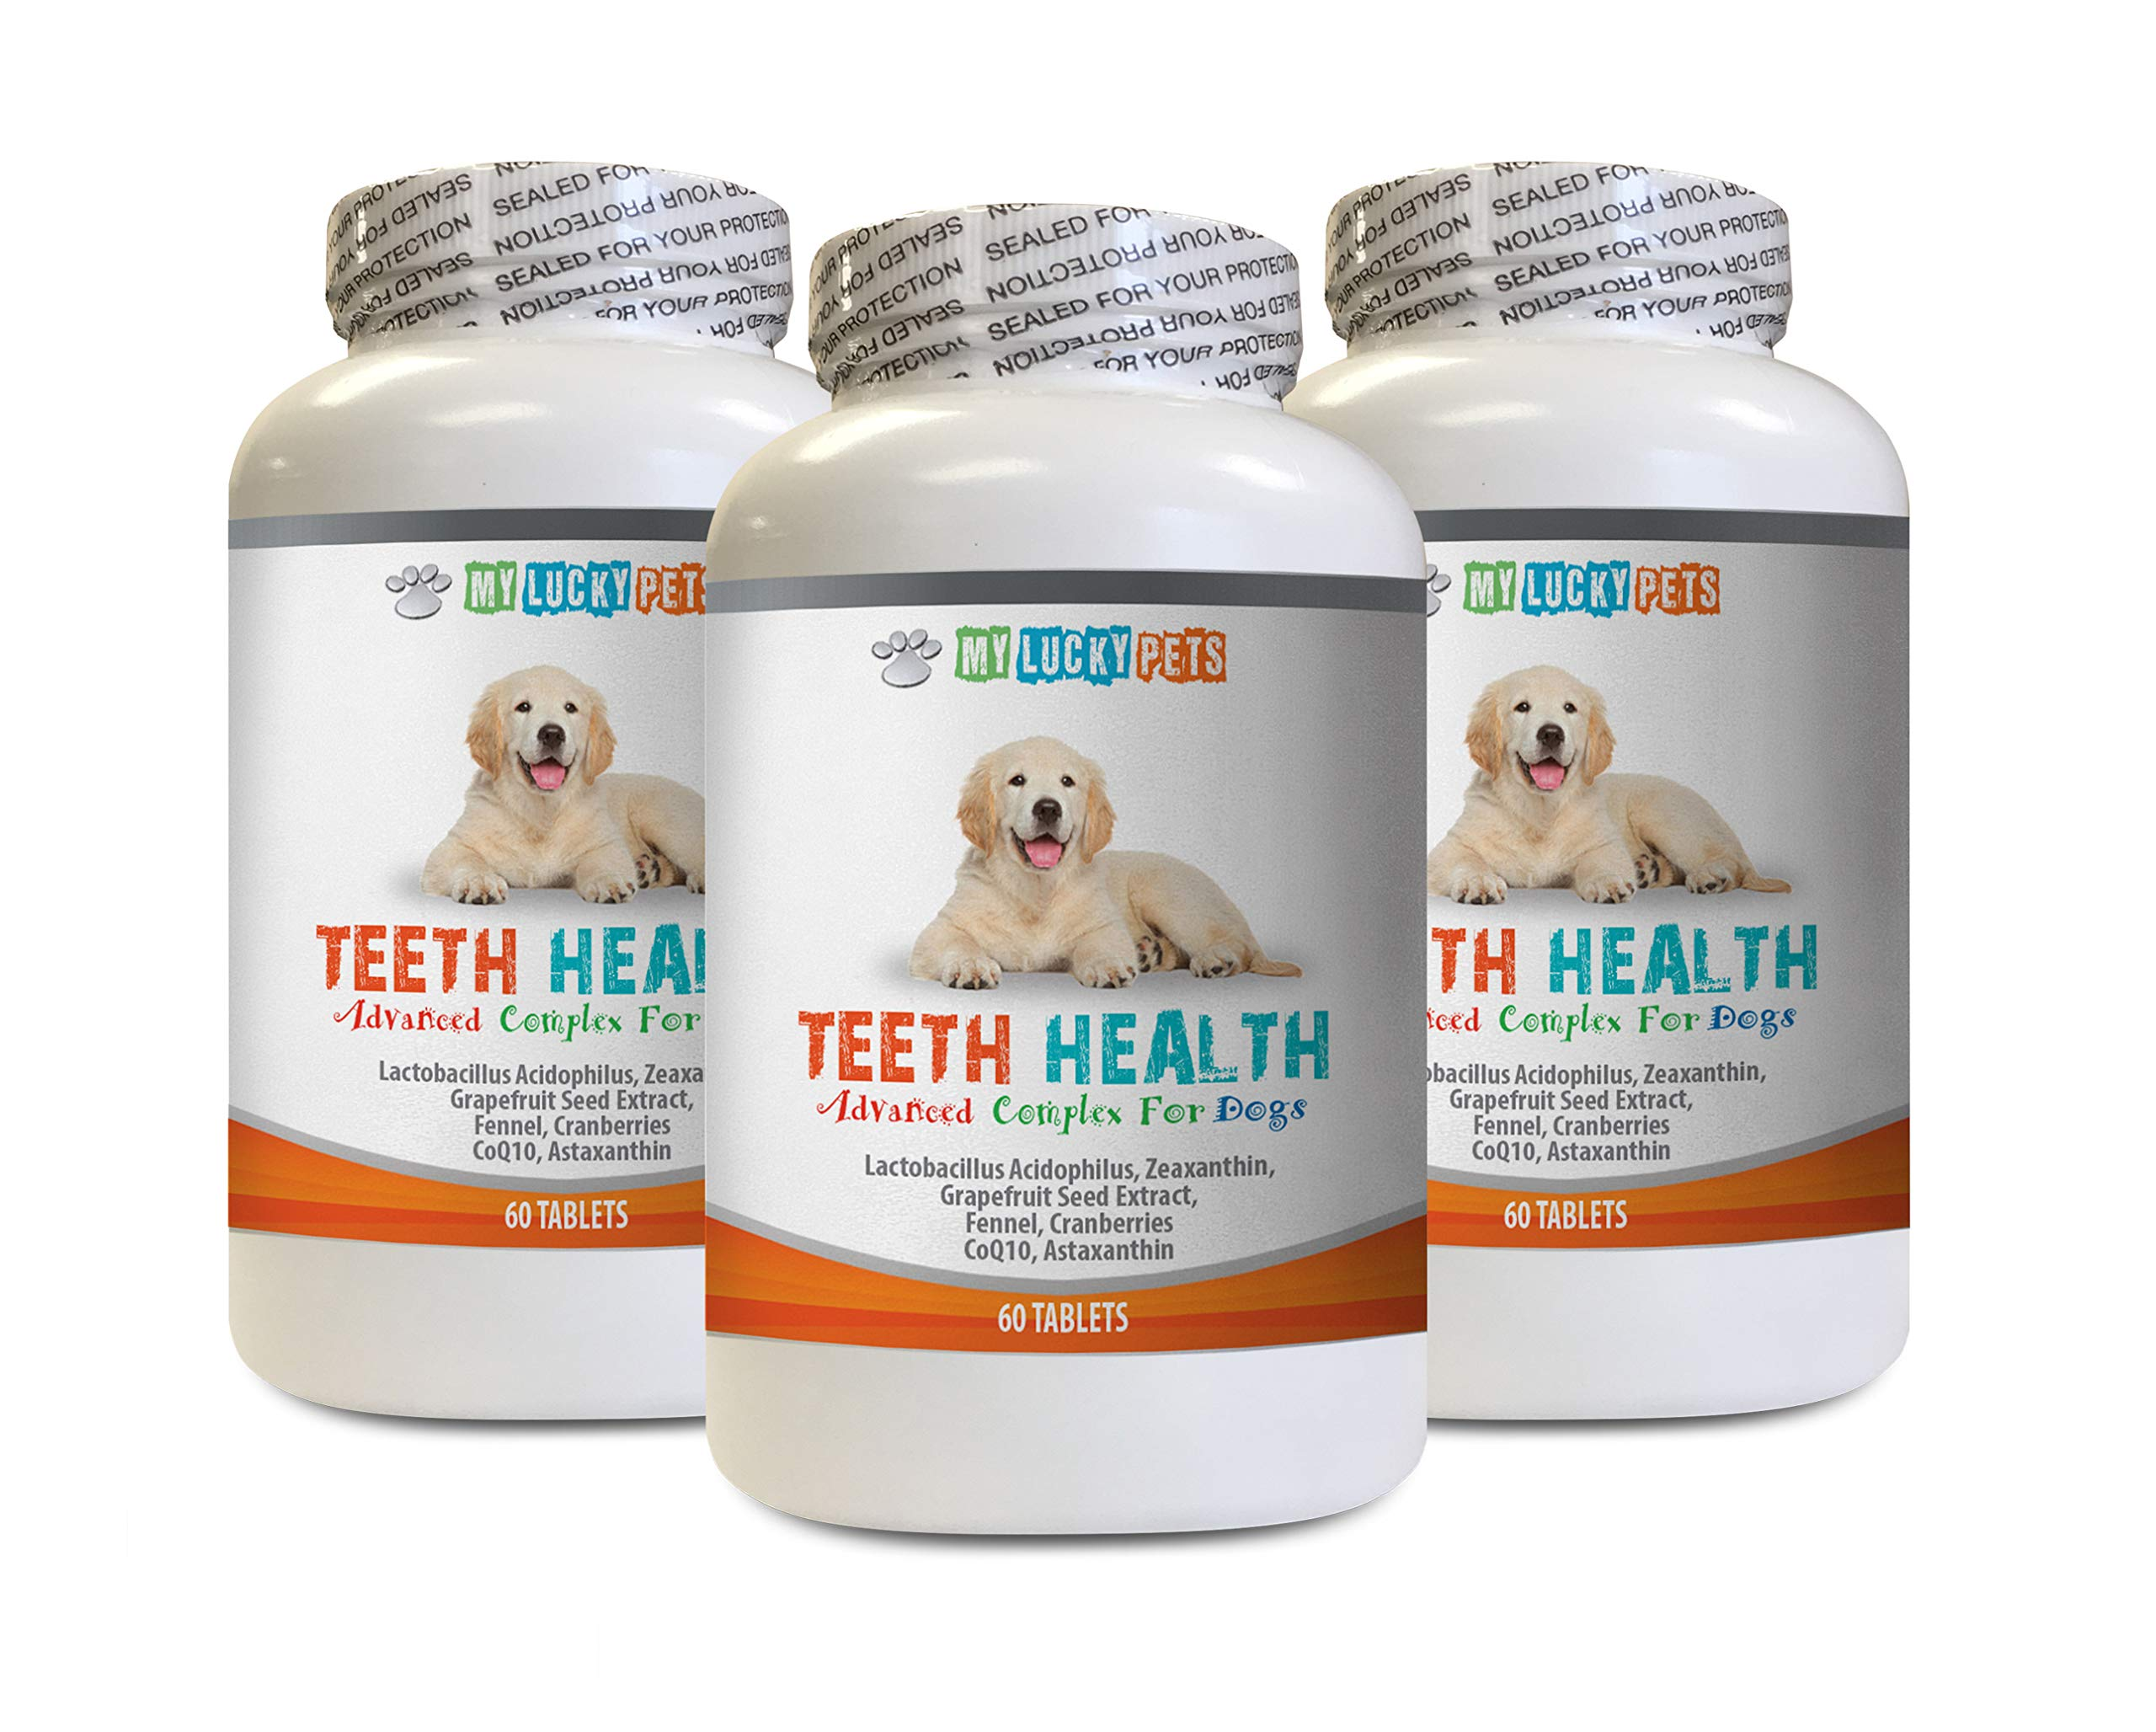 MY LUCKY PETS LLC Healthy Teeth for Dogs - Advanced Teeth Health for Dogs - Fights Bad Breath - Best Looking Gums and Teeth - Dog Vitamins Senior Chews - 180 Tablets (3 Bottles) by MY LUCKY PETS LLC